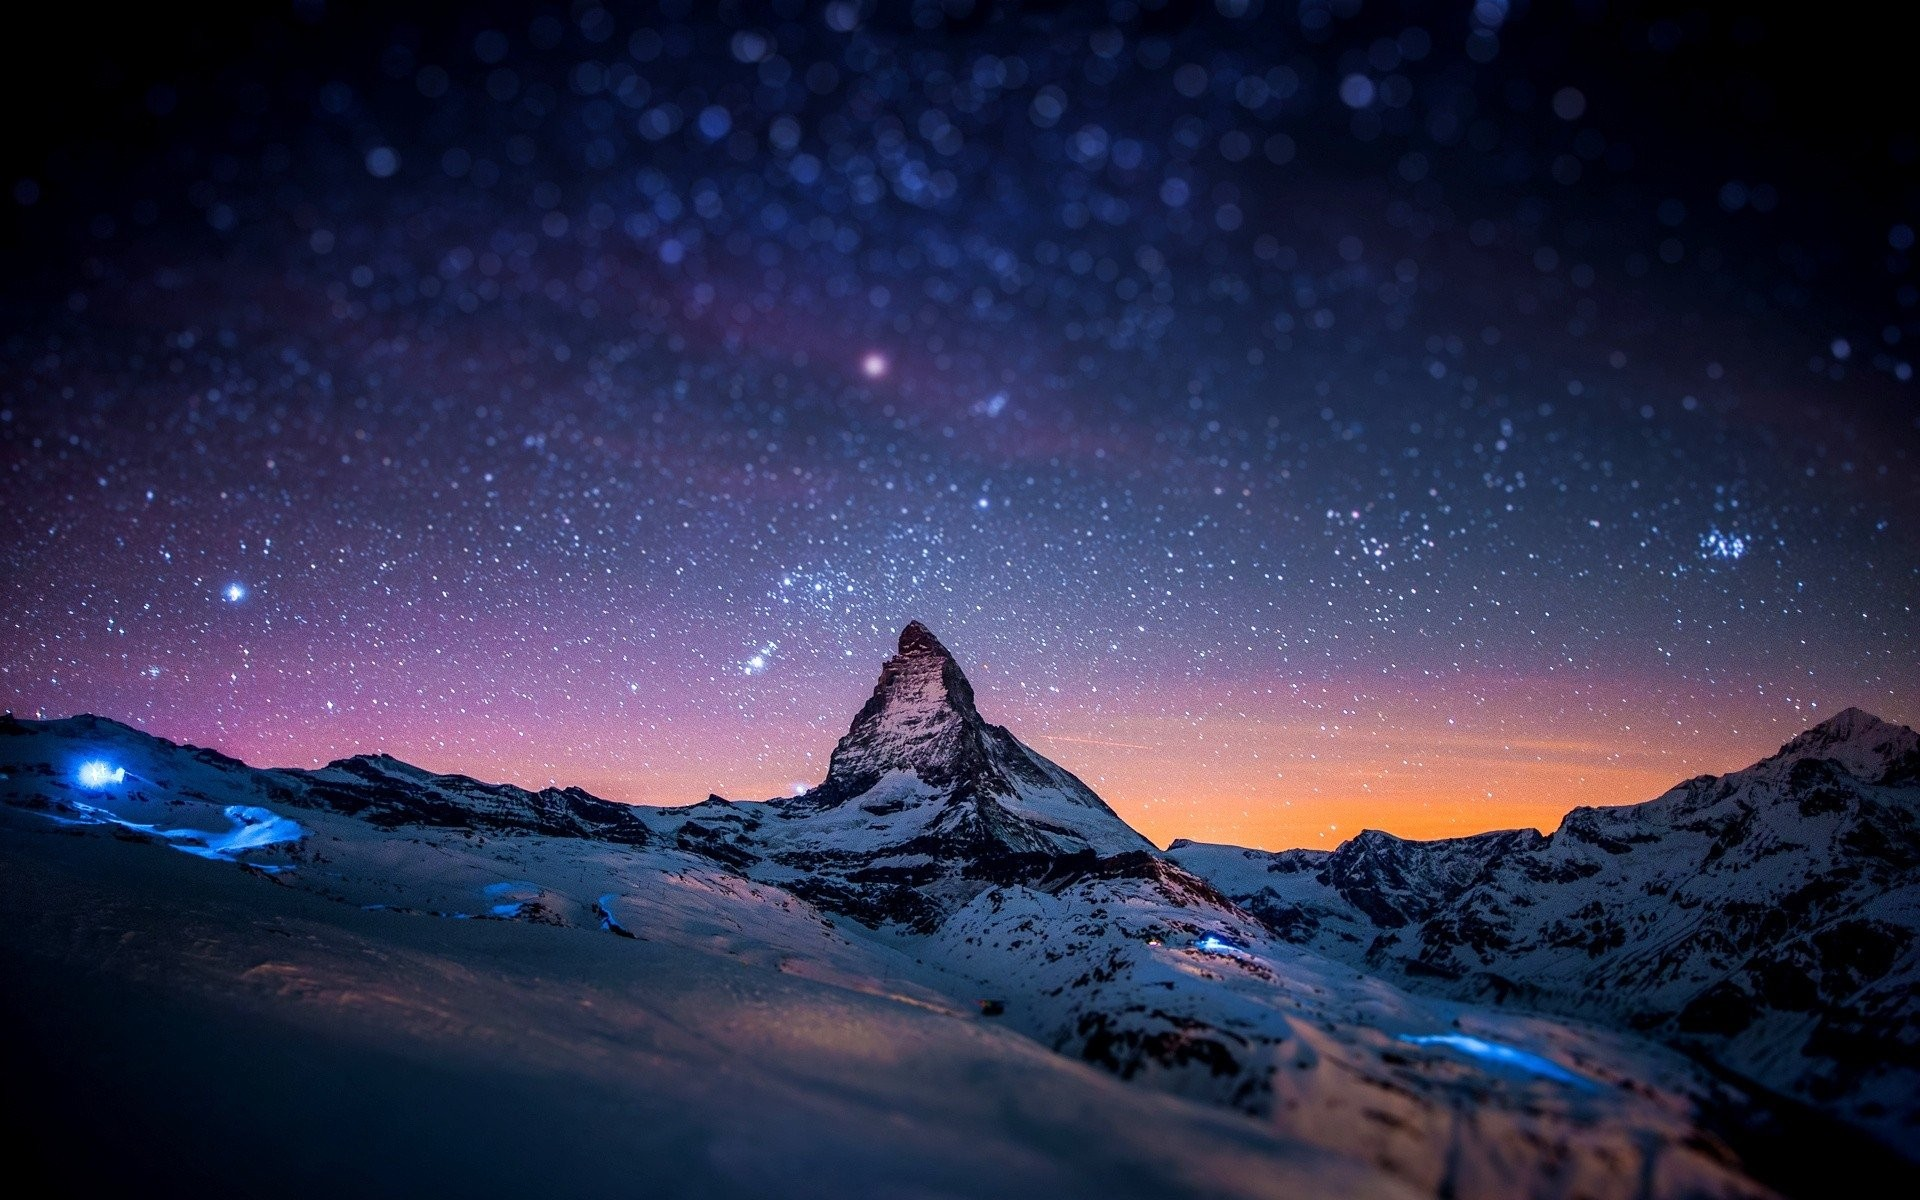 Night Sky Wallpaper ① Download Free Cool Full Hd Wallpapers For